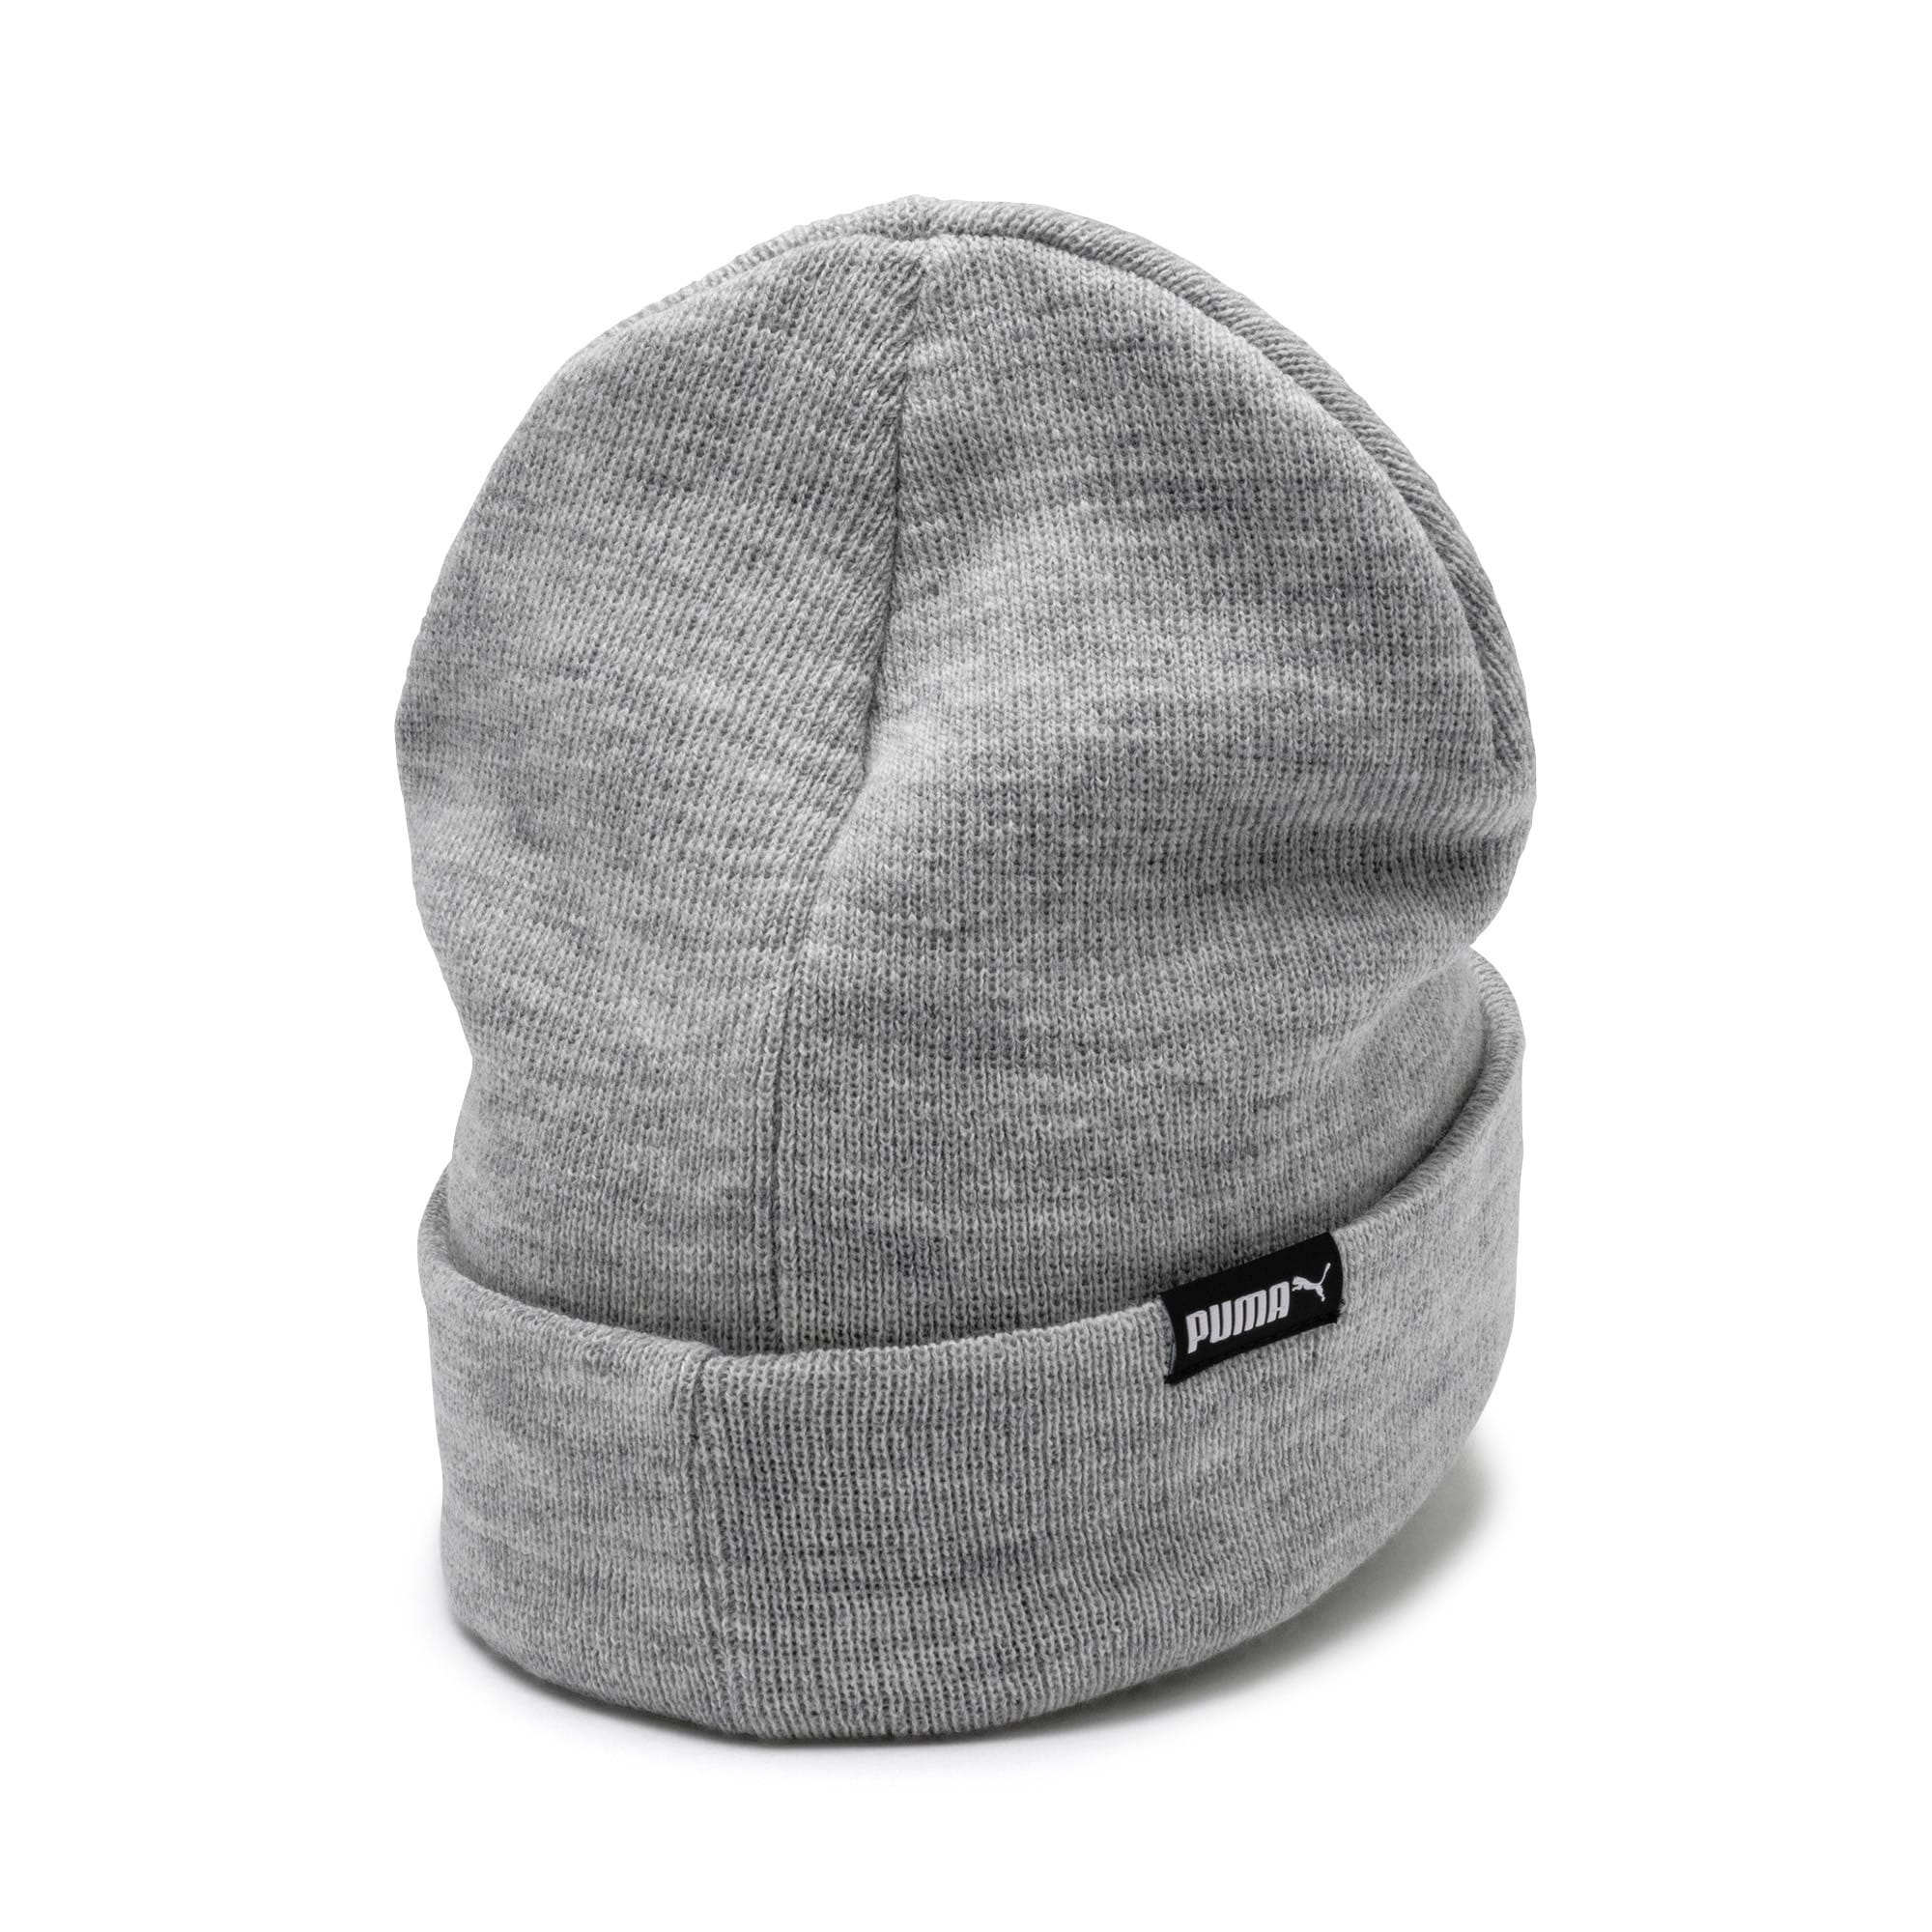 Thumbnail 2 of Archive Mid Fit Beanie, Light Gray Heather, medium-IND